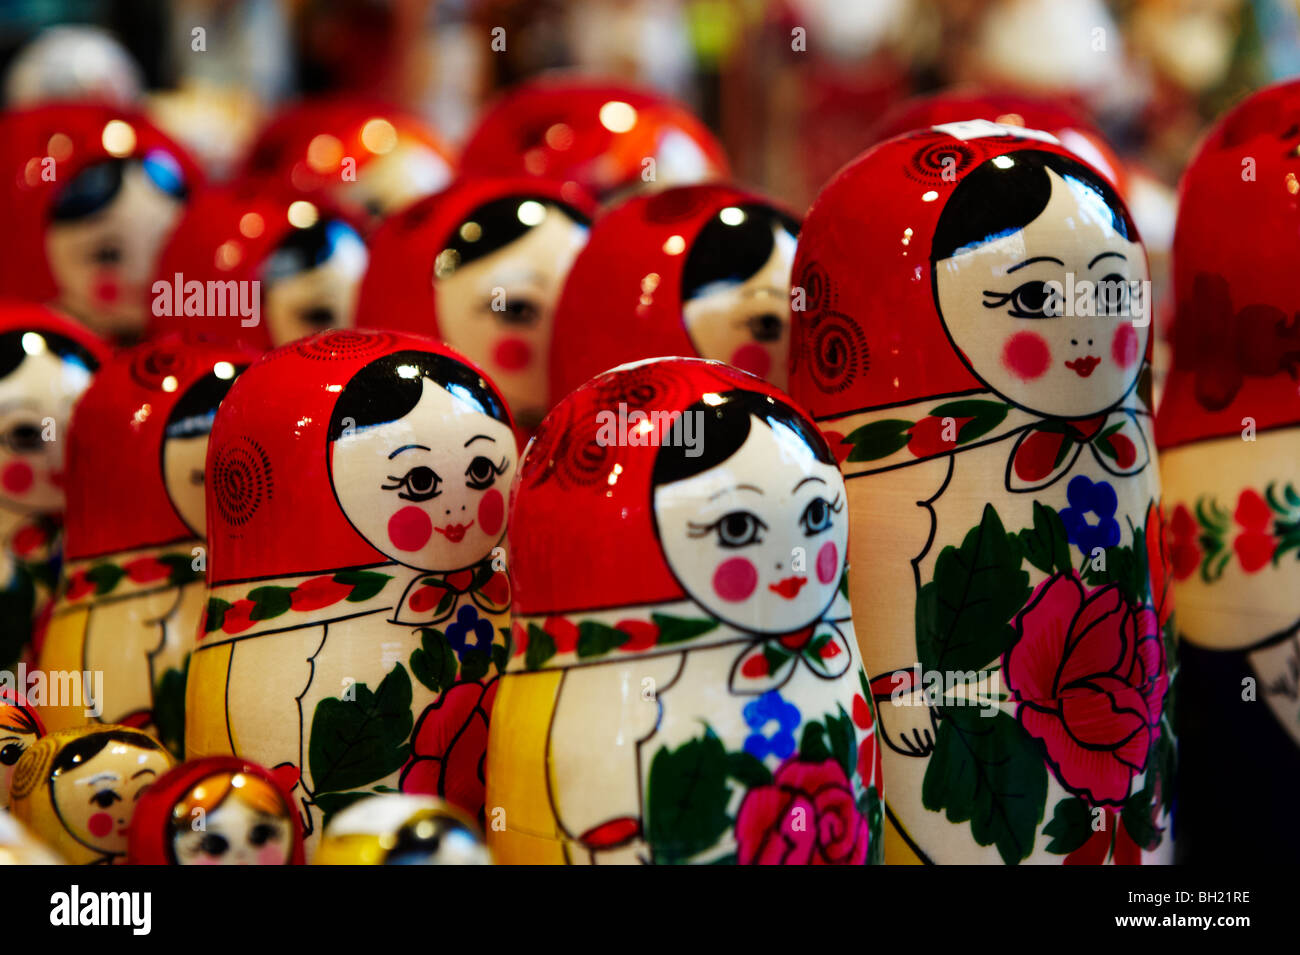 Christmas Markets Berlin Germany - Stock Image